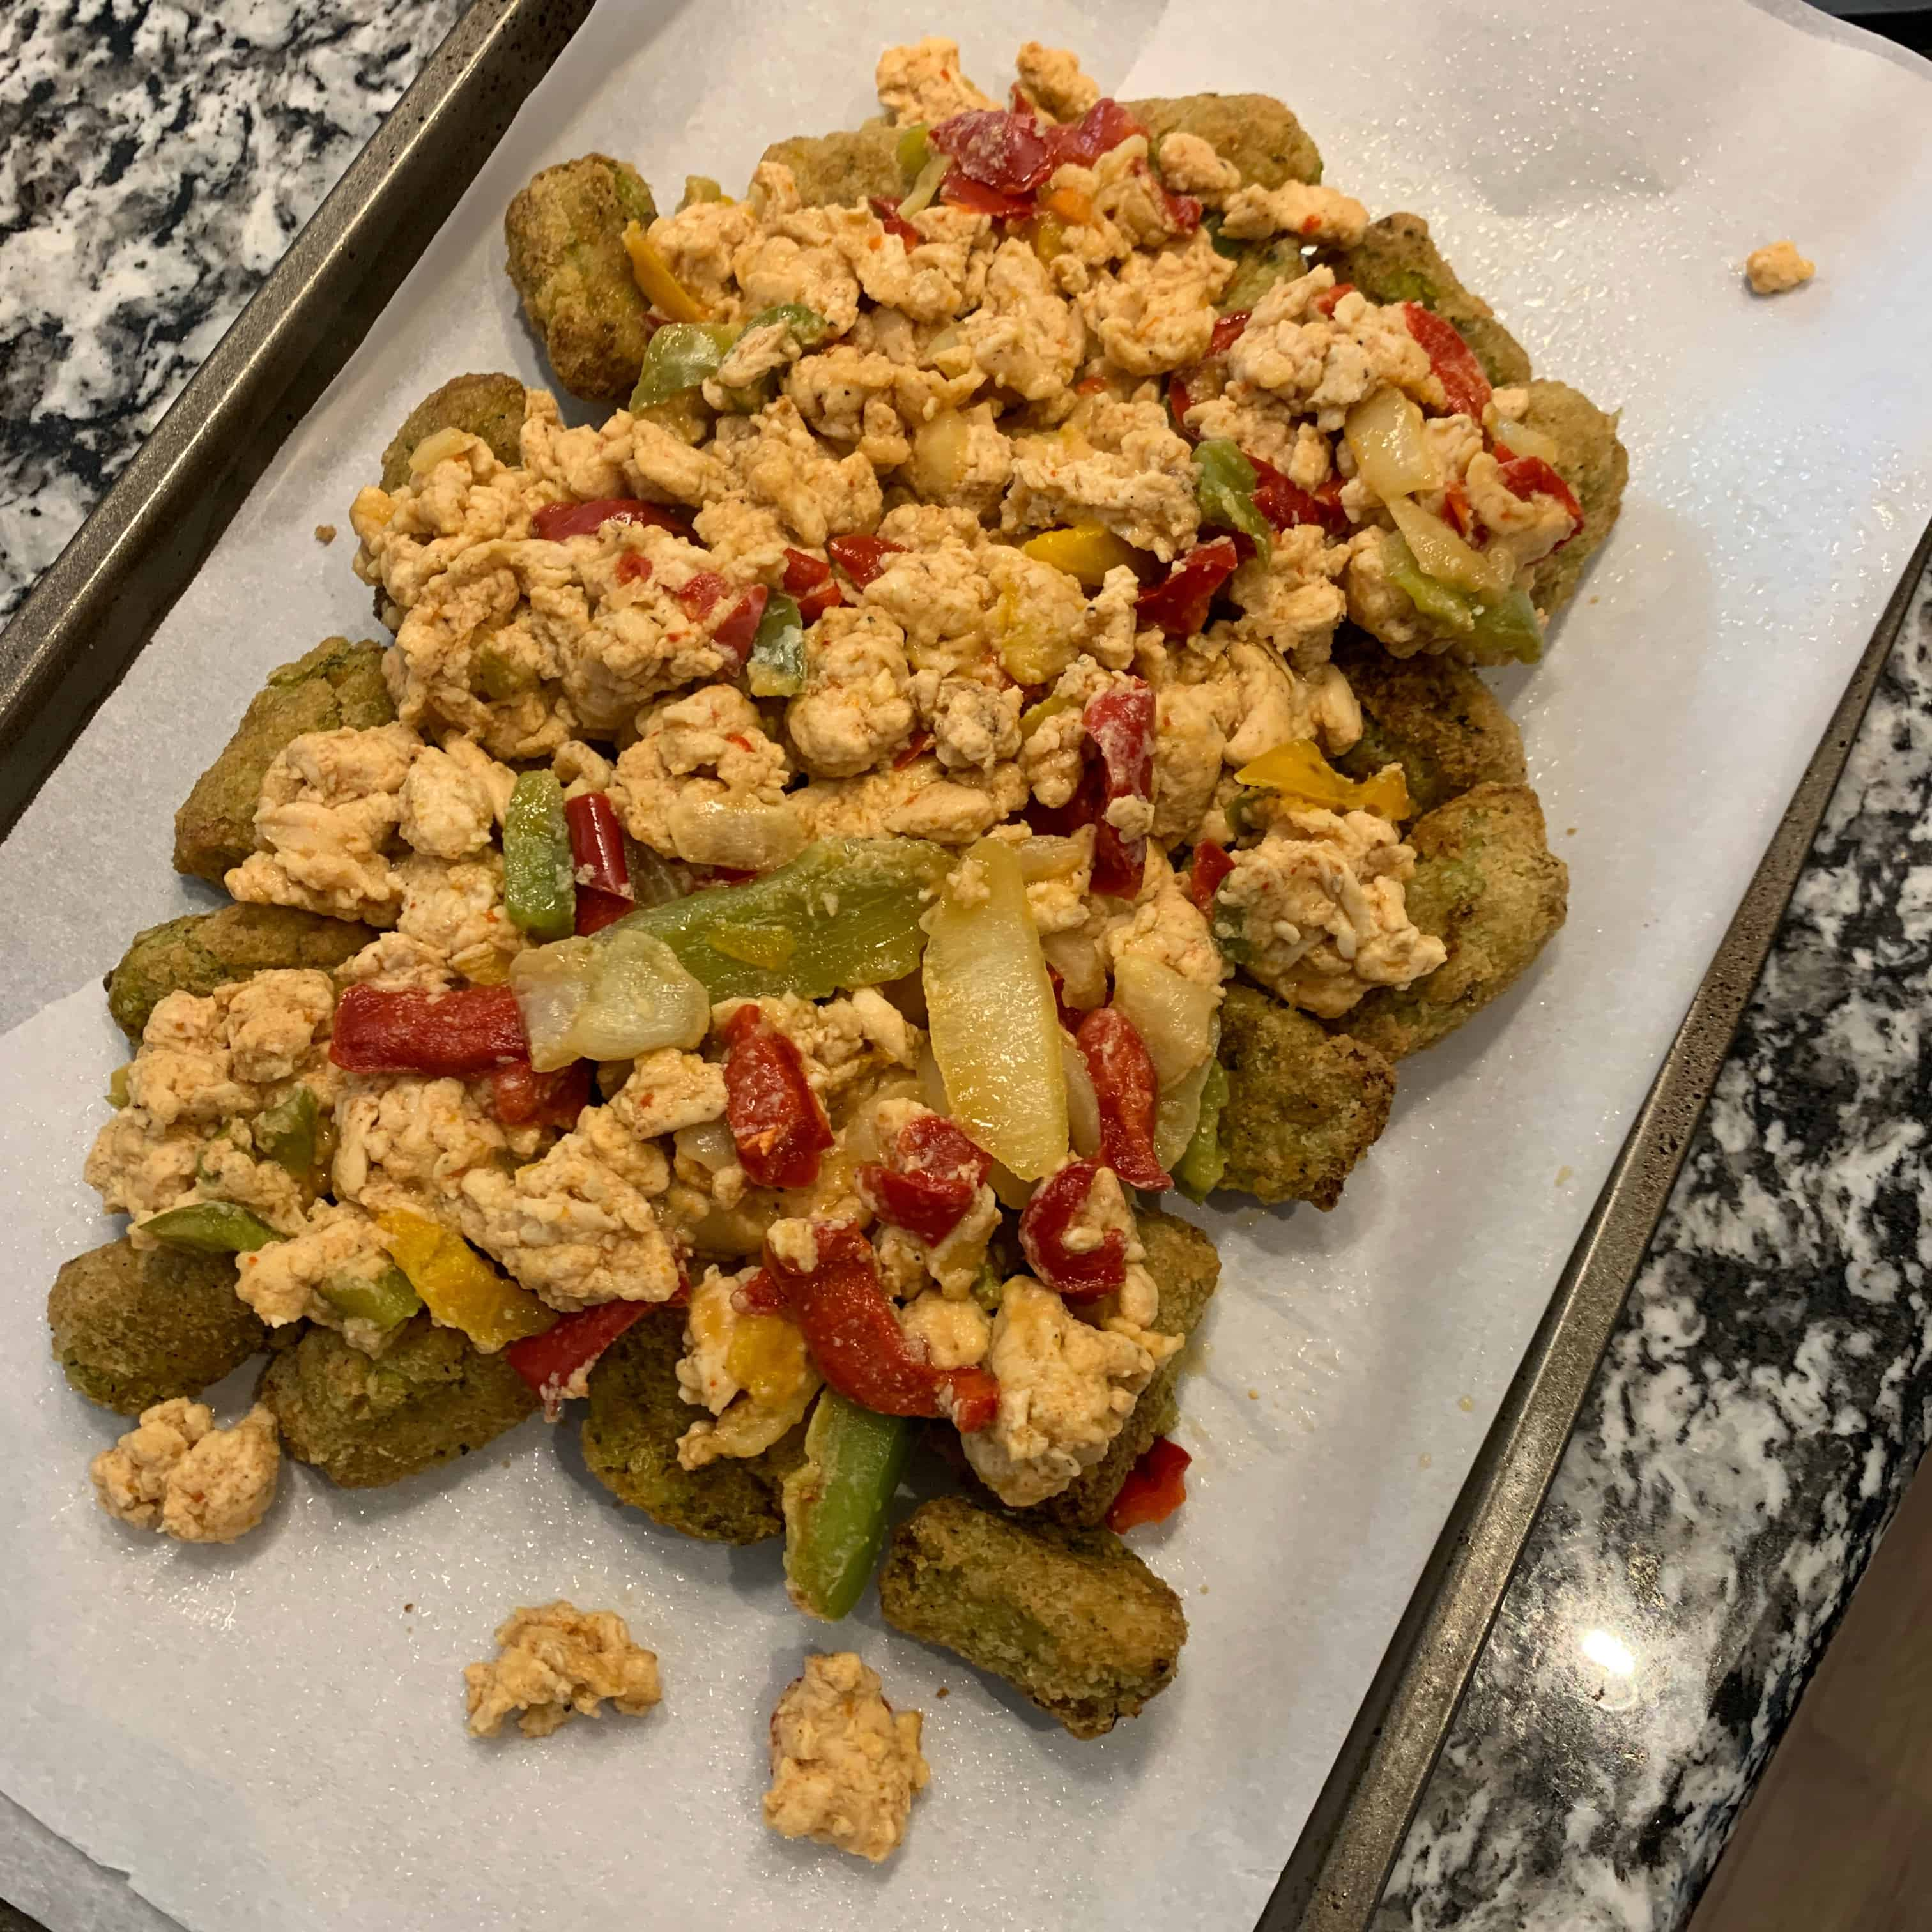 egg whites and peppers on top of cooked tots